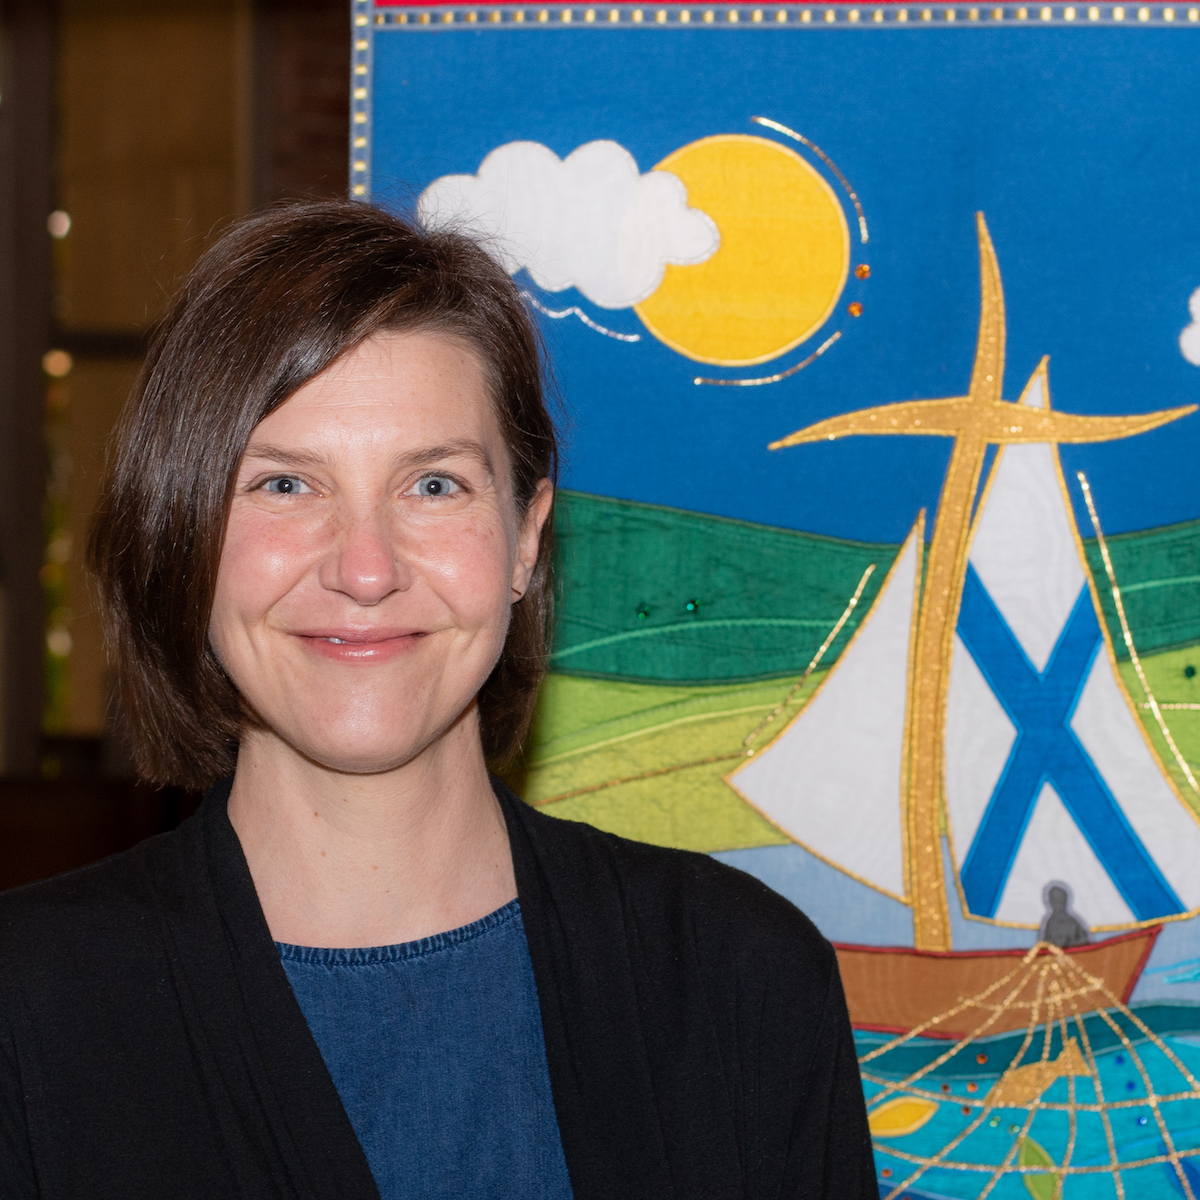 Emily Blecksmith is shown from the shoulders up, standing with the St. Andrew's banner.